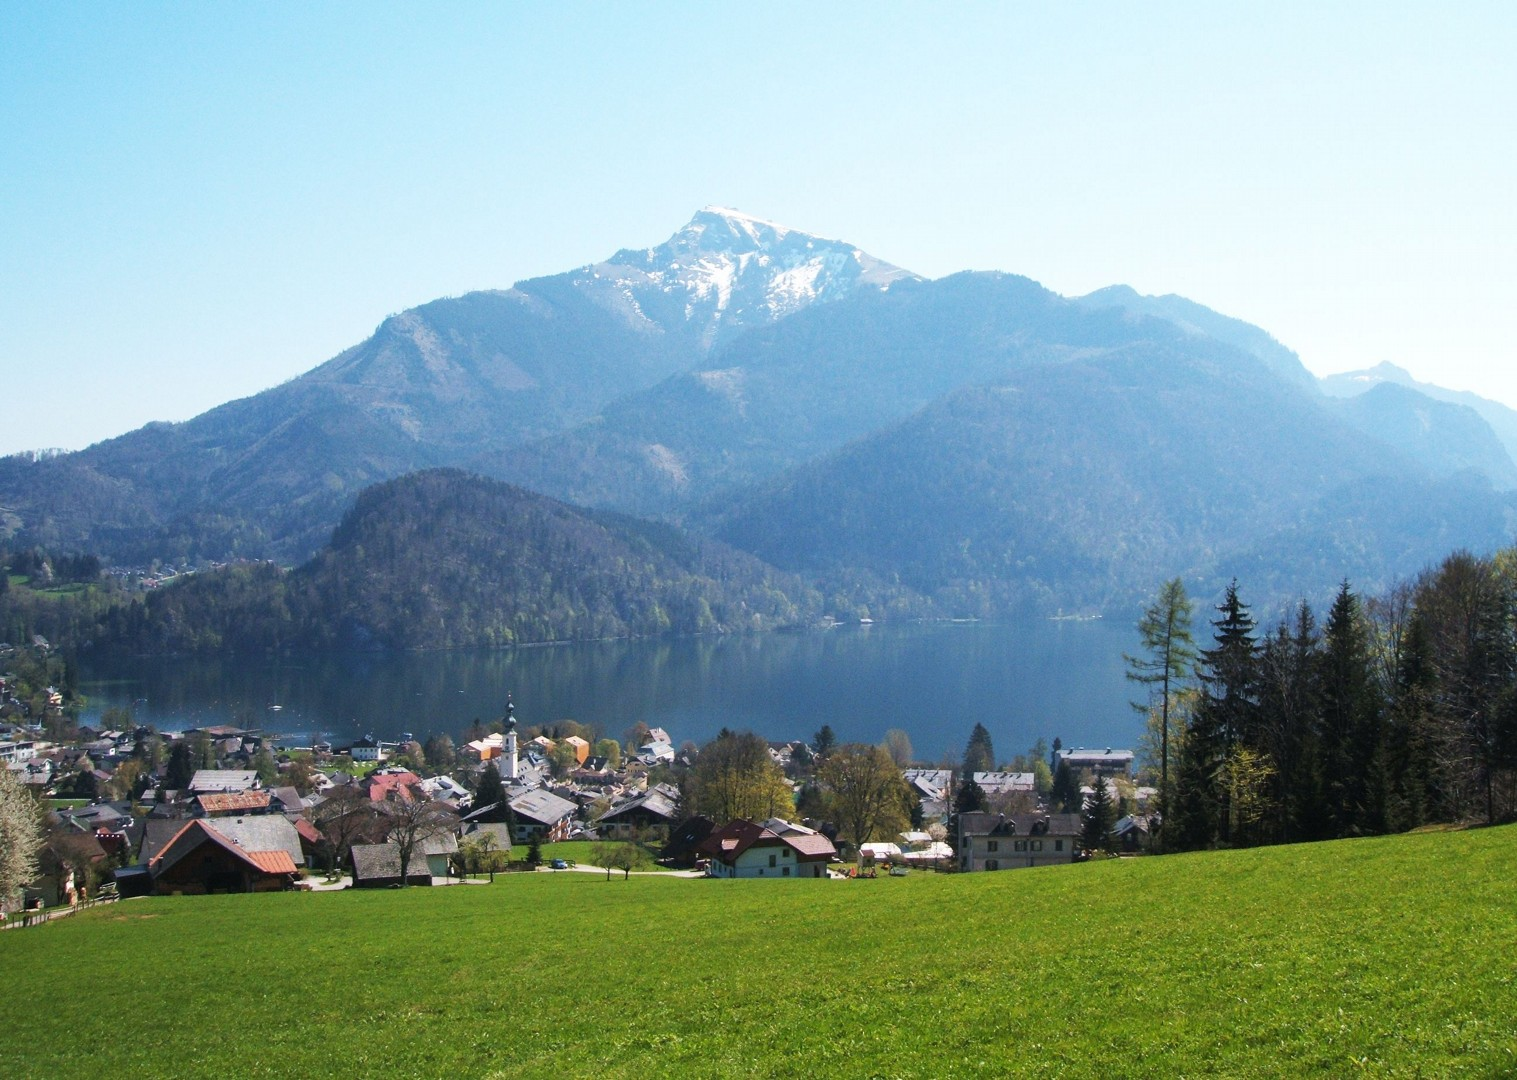 austrian-mountainous-scenery-cycling-tour-mondsee-lake.jpg - Austria - Ten Lakes Tour - Self-Guided Family Cycling Holiday - Family Cycling